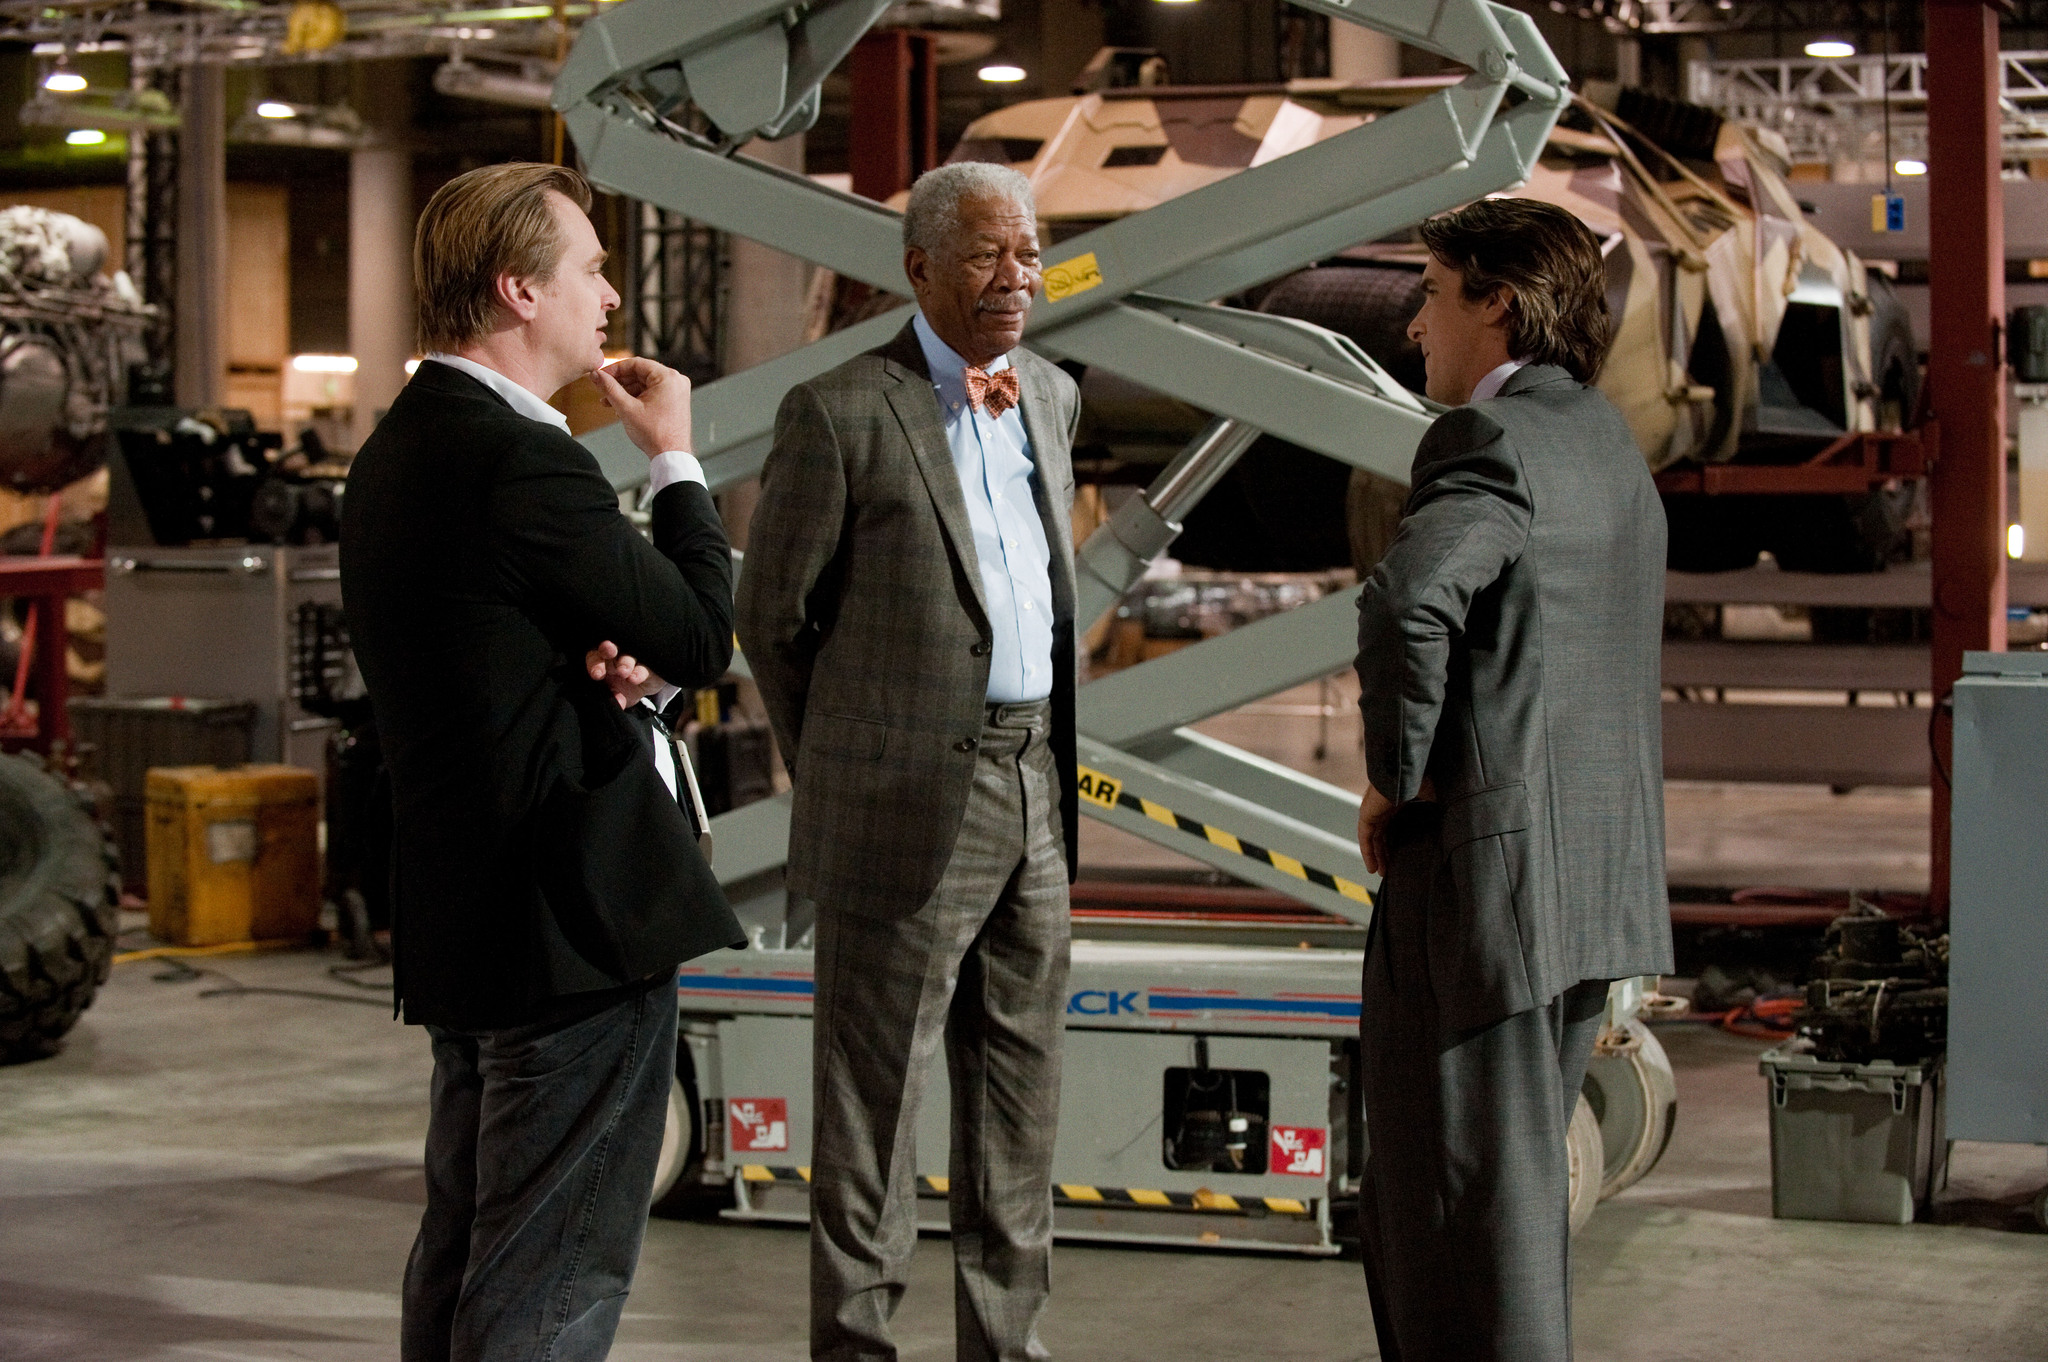 Morgan Freeman, Christian Bale, and Christopher Nolan in The Dark Knight Rises (2012)